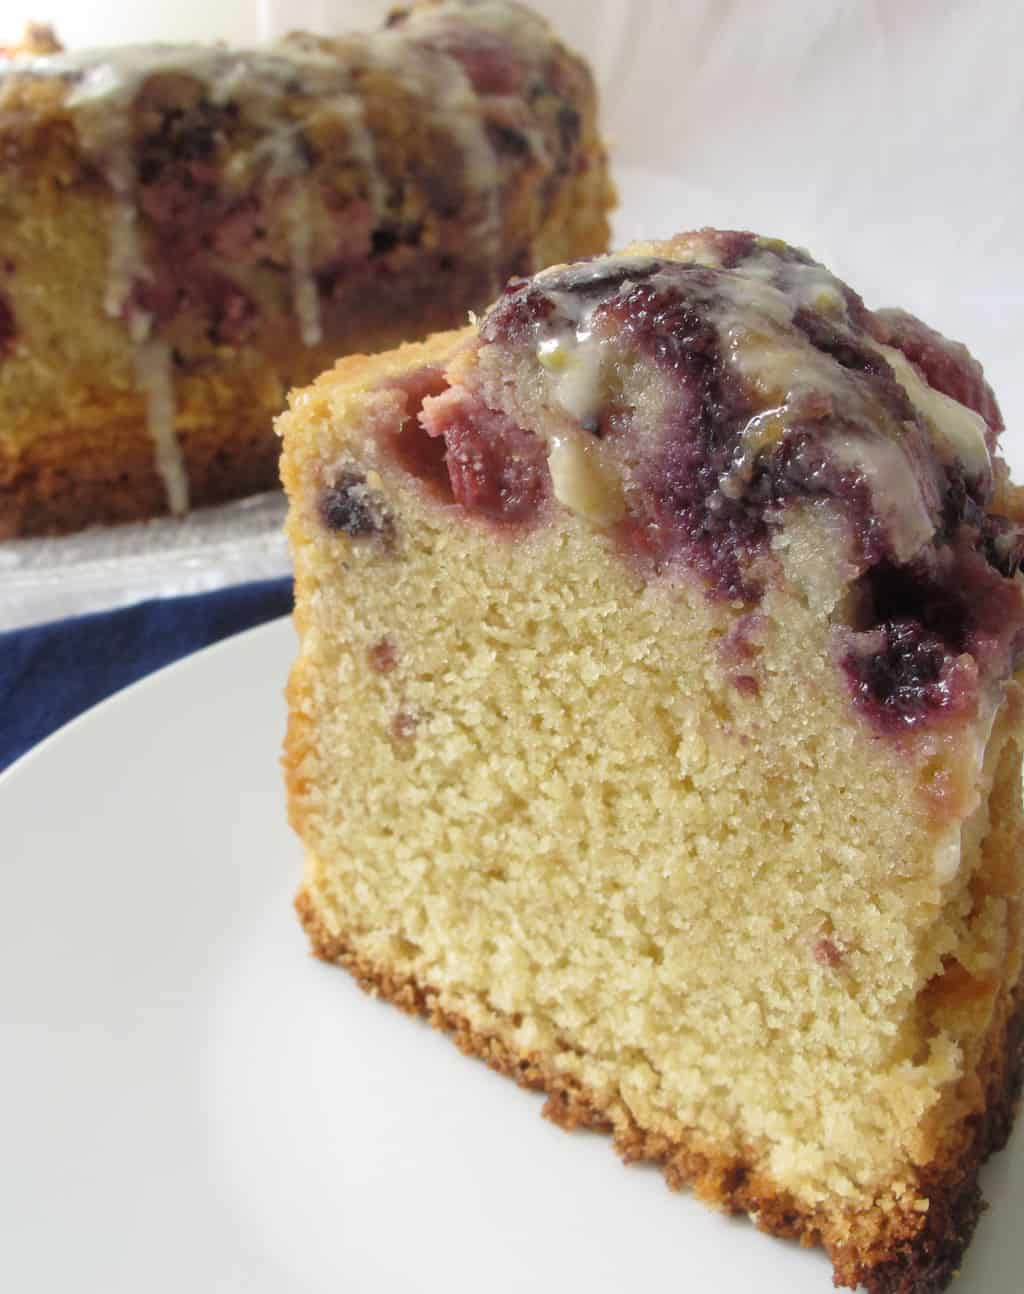 Gluten-Free Berry Delicious Bundt Cake